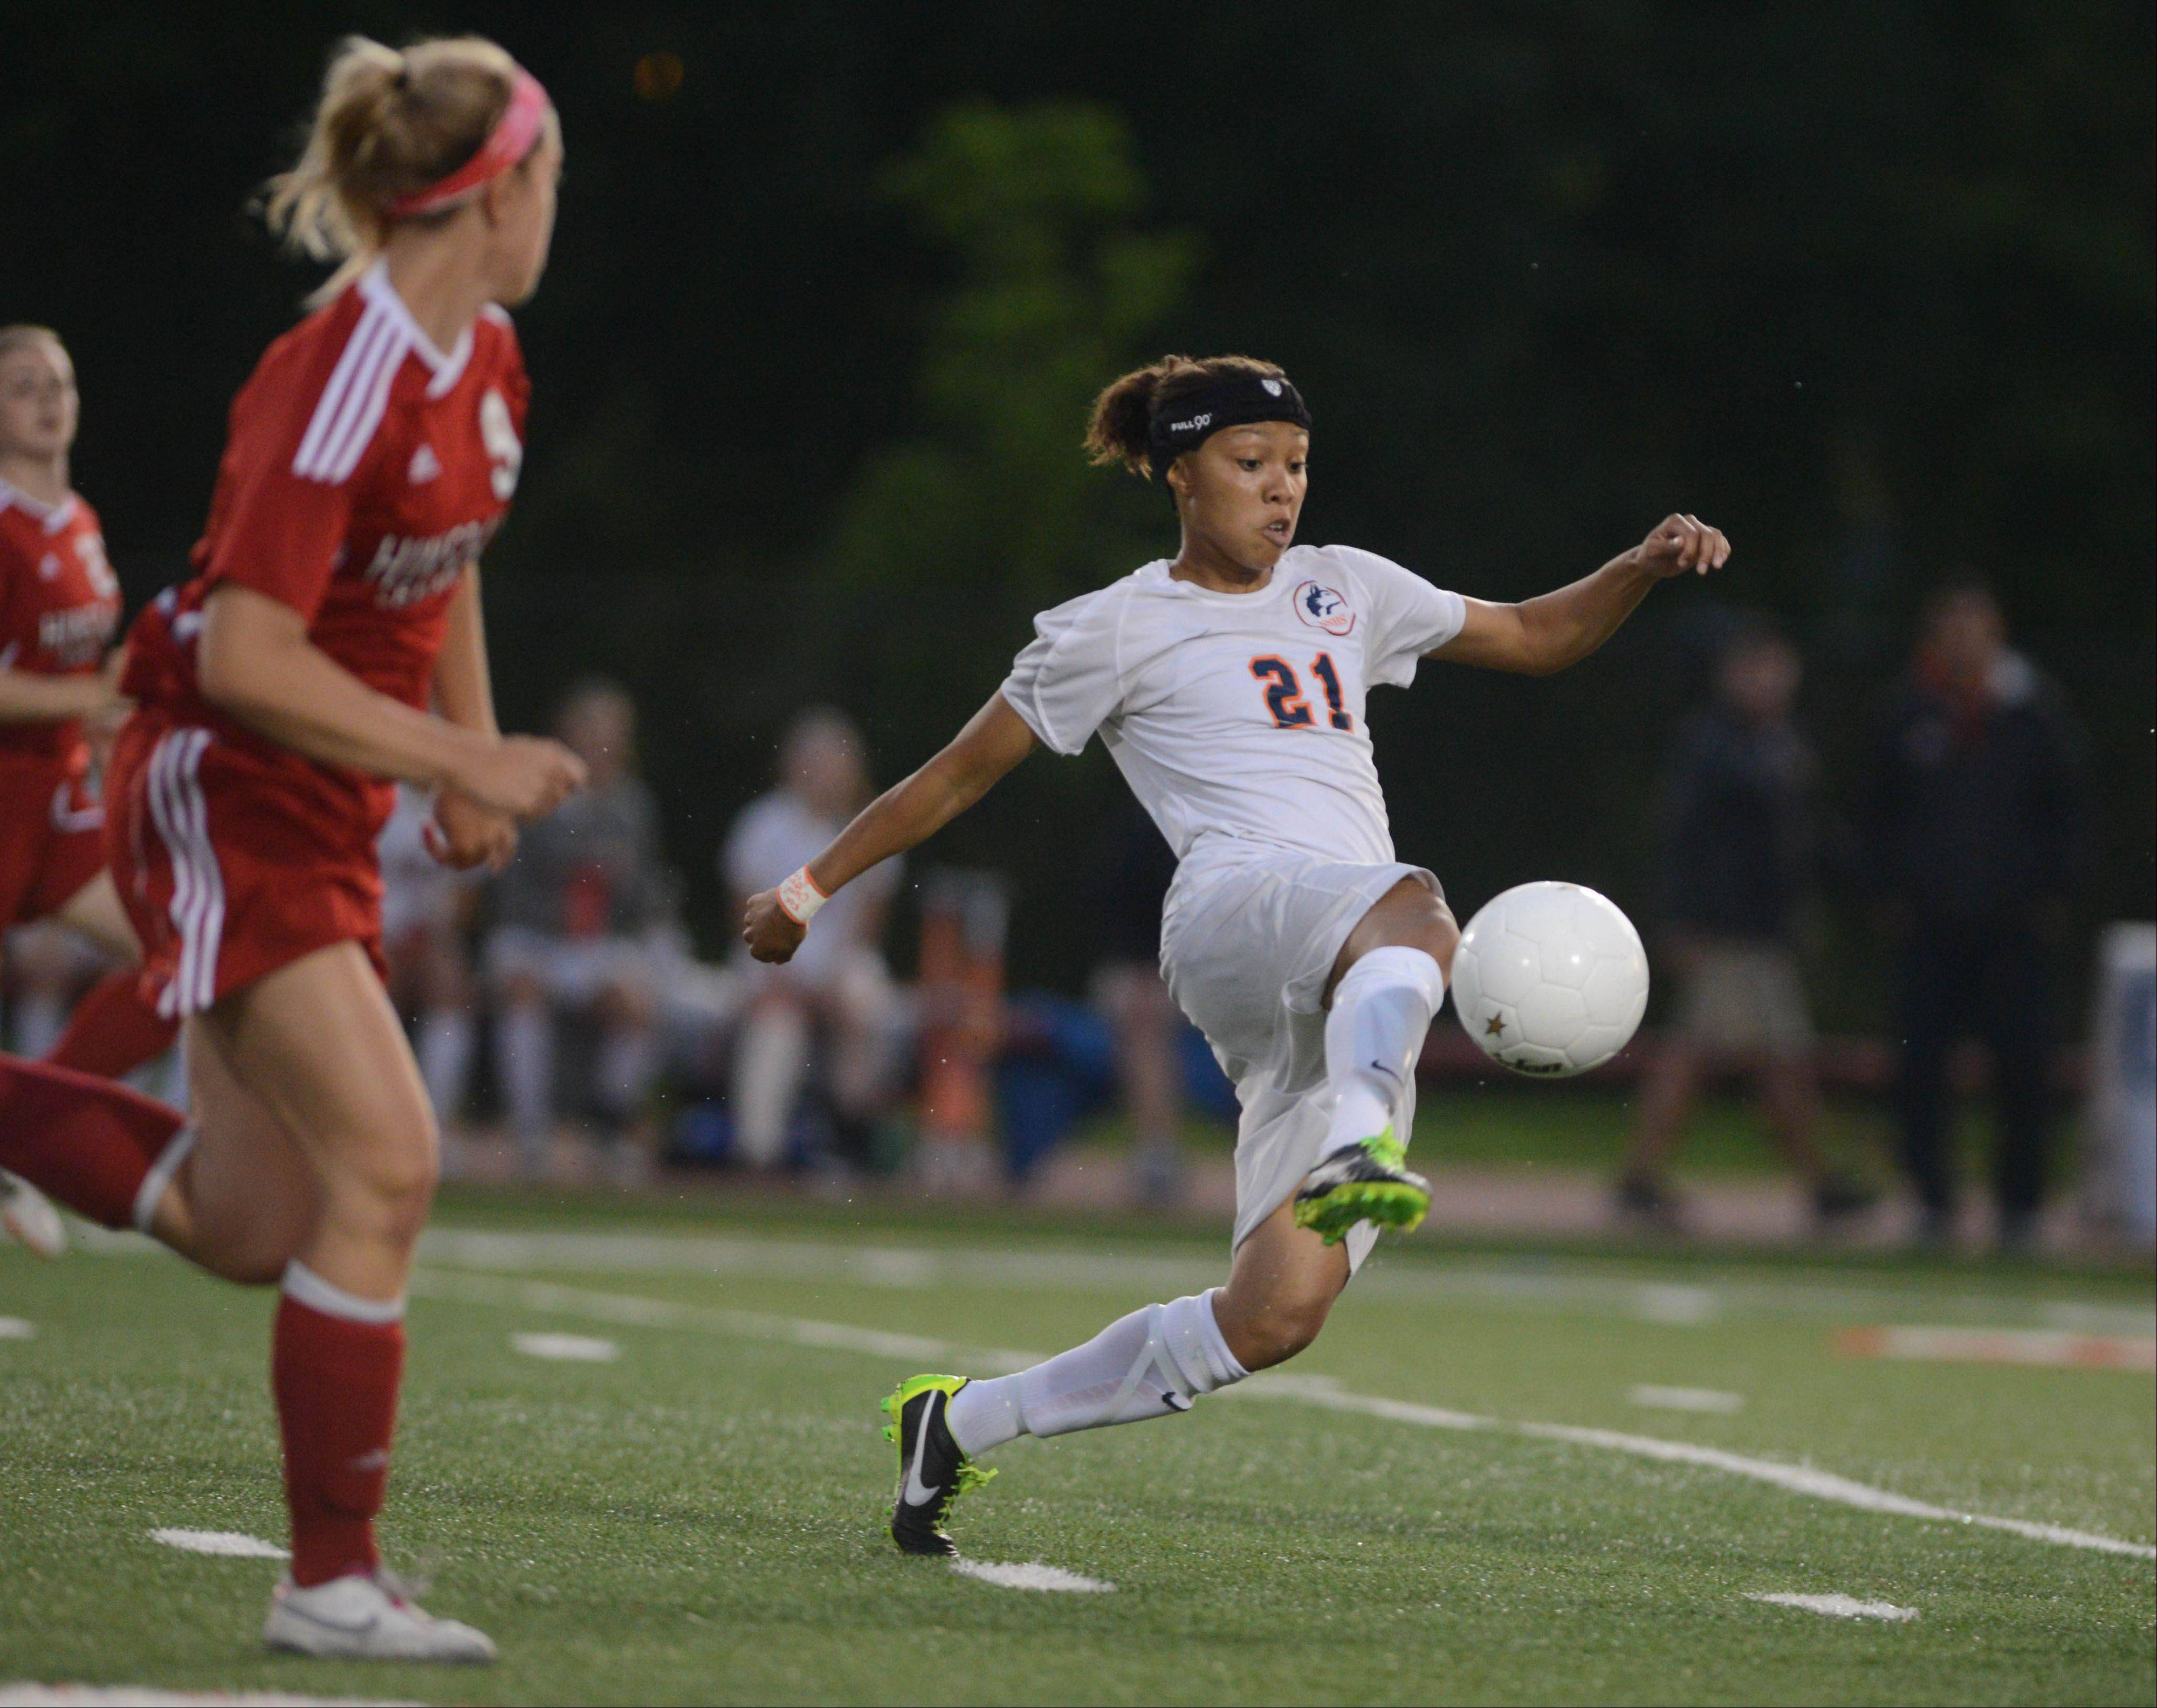 Zoe Swift of Naperville North moves the ball during the Class 3A girls soccer championship match in Naperville Saturday.